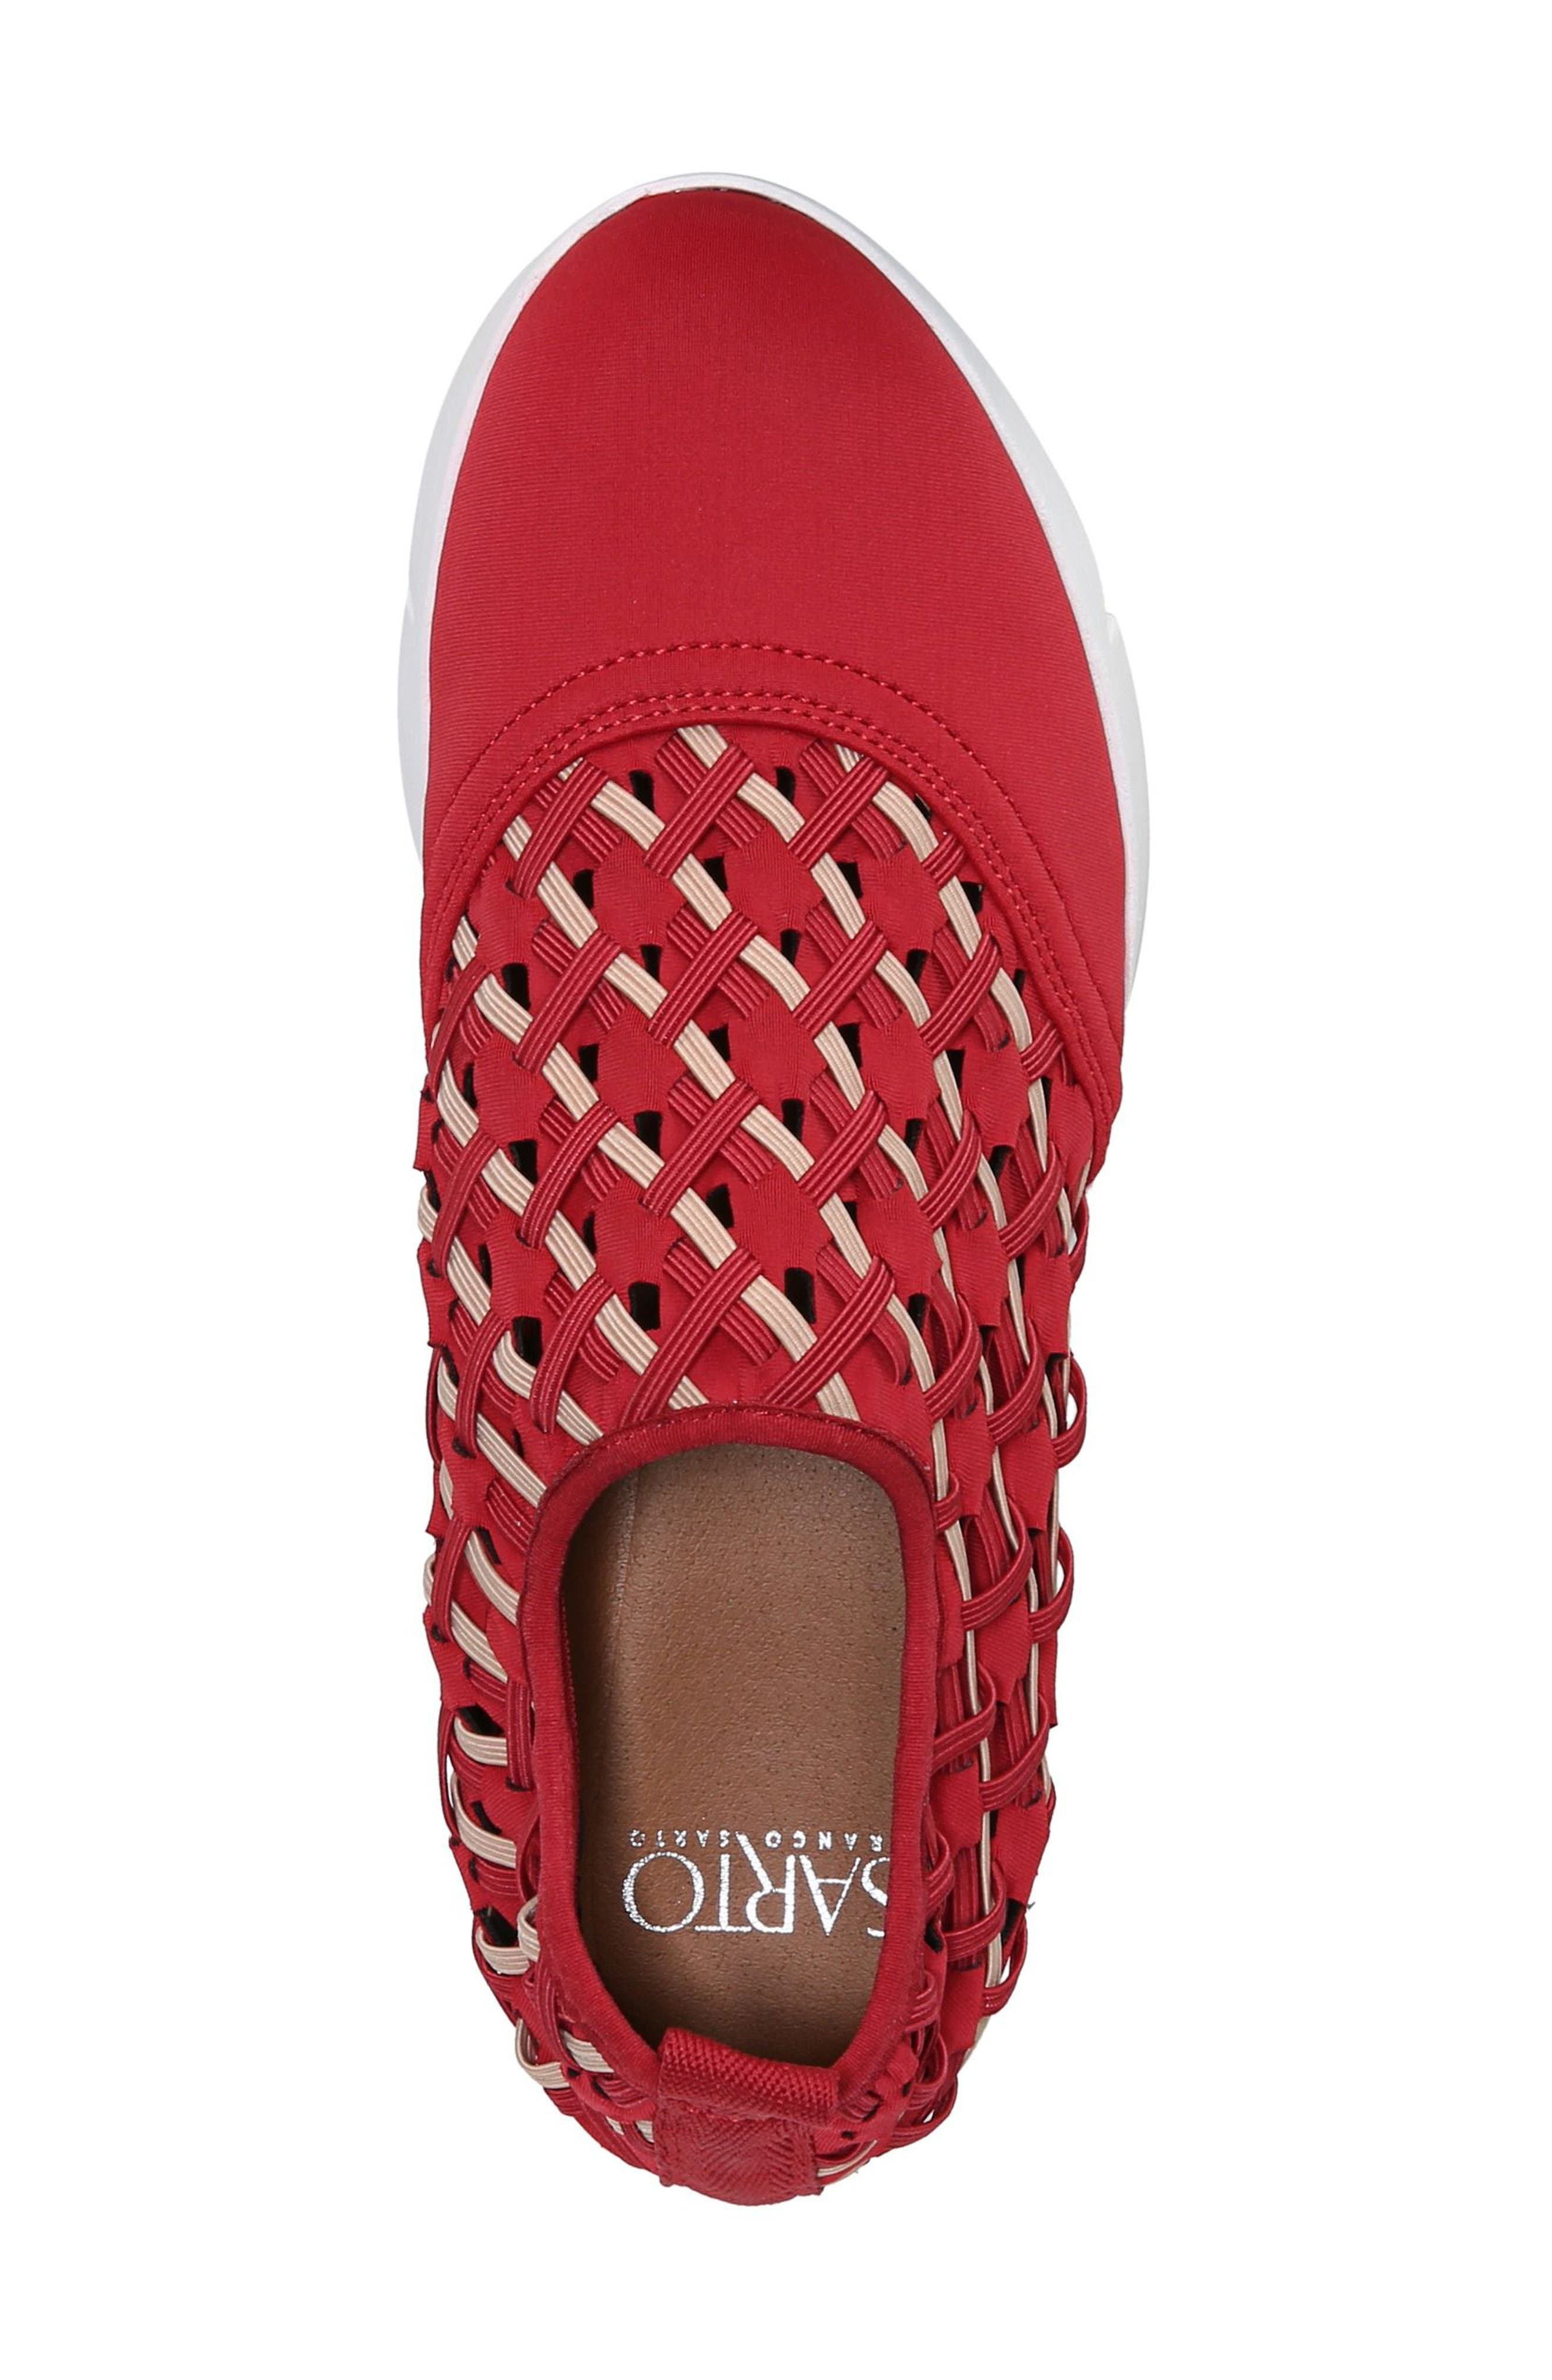 Fallan Woven Slip-On Sneaker,                             Alternate thumbnail 5, color,                             Deep Red Leather